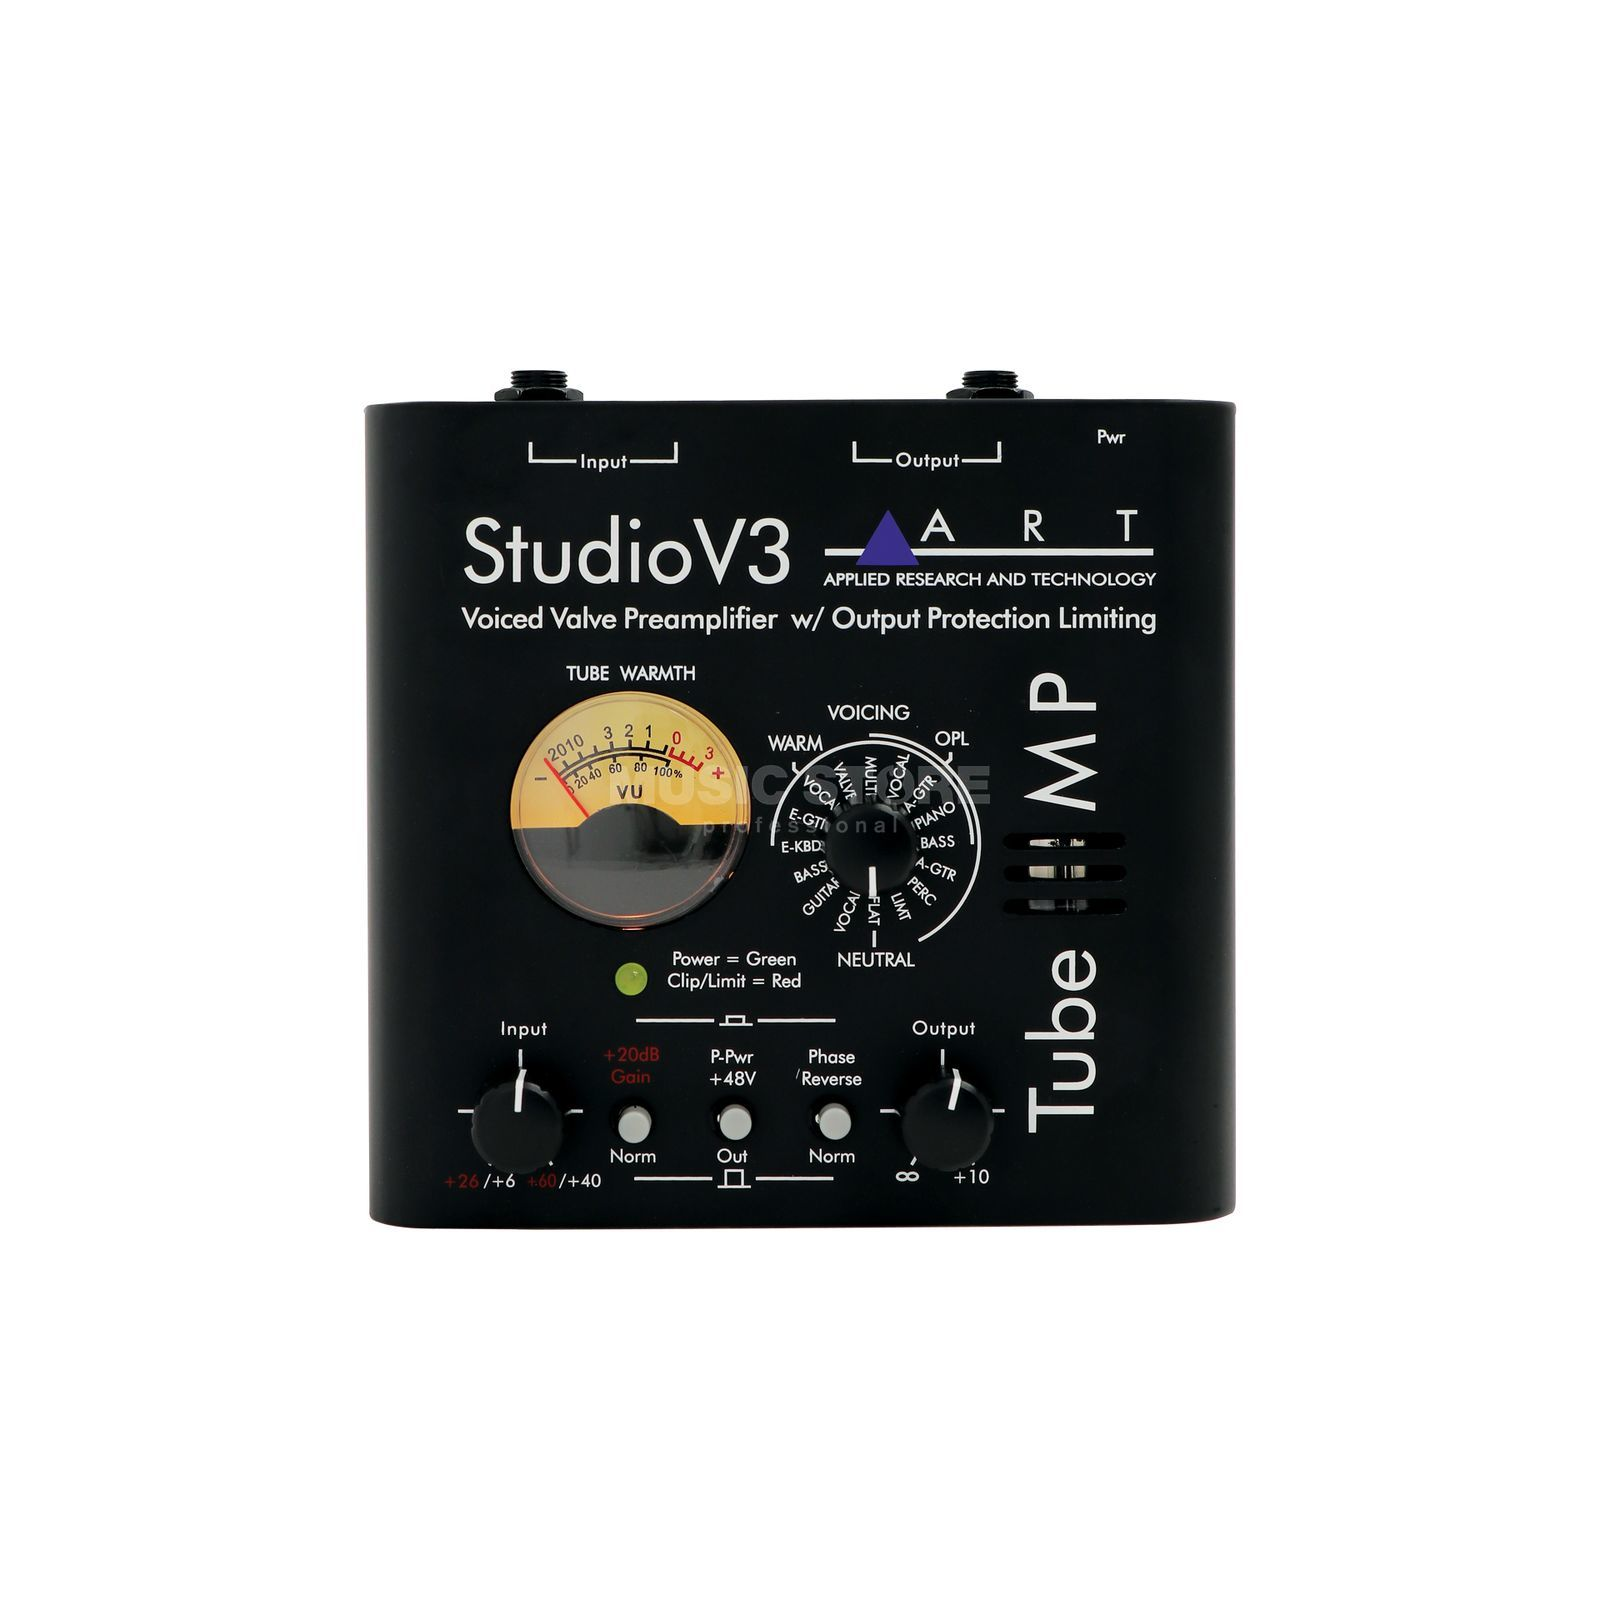 ART Applied Research & Technology Tube MP Studio V3 1-Ch Mic/Limiter/VU/15 Presets Produktbild